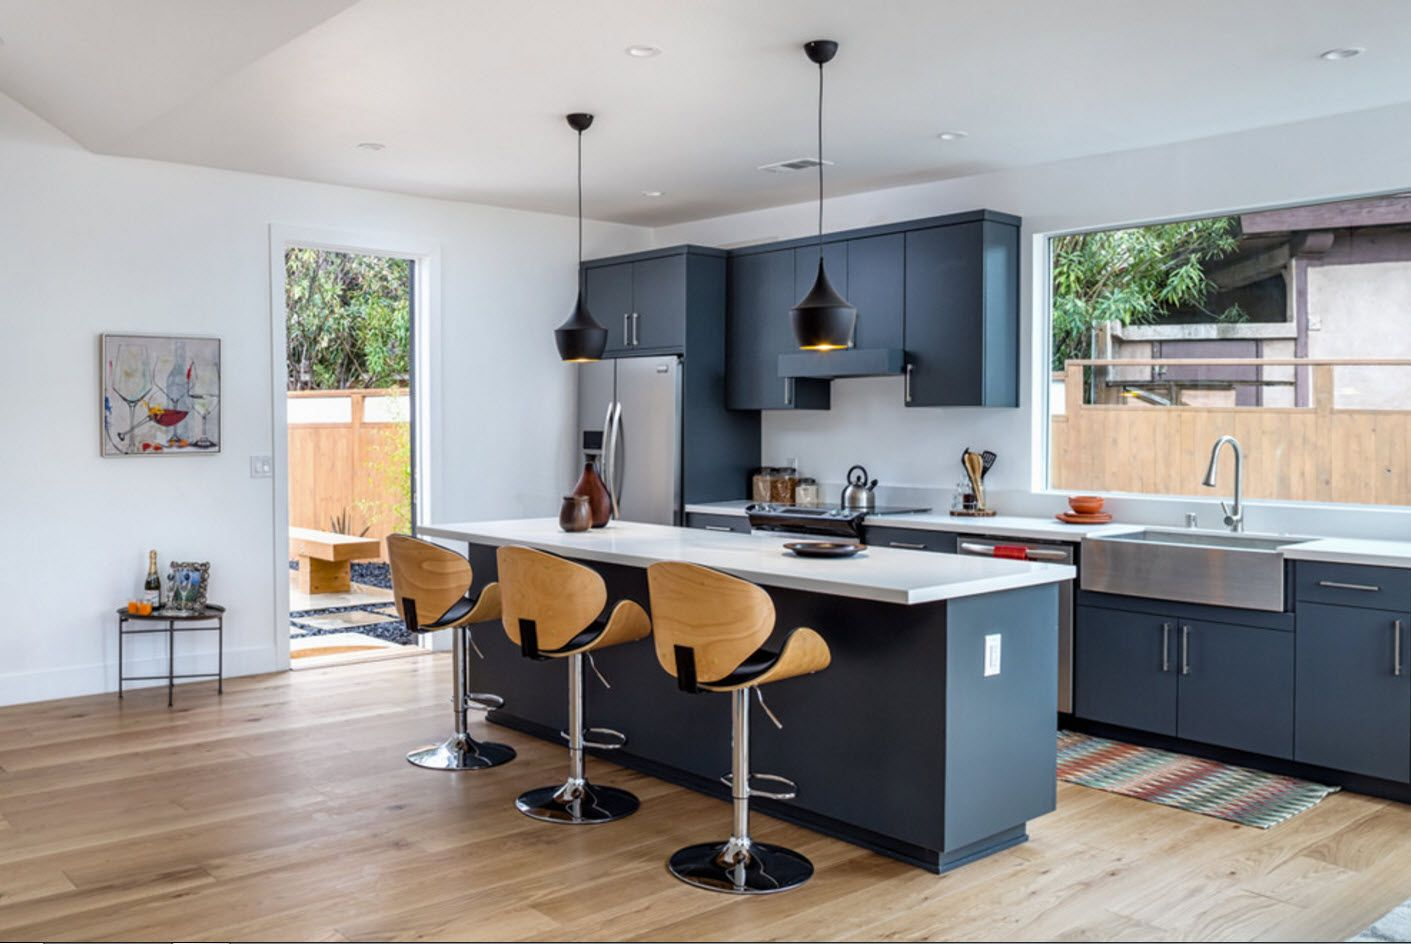 Privat ehouse and its open layout kitchen with dark blue facades